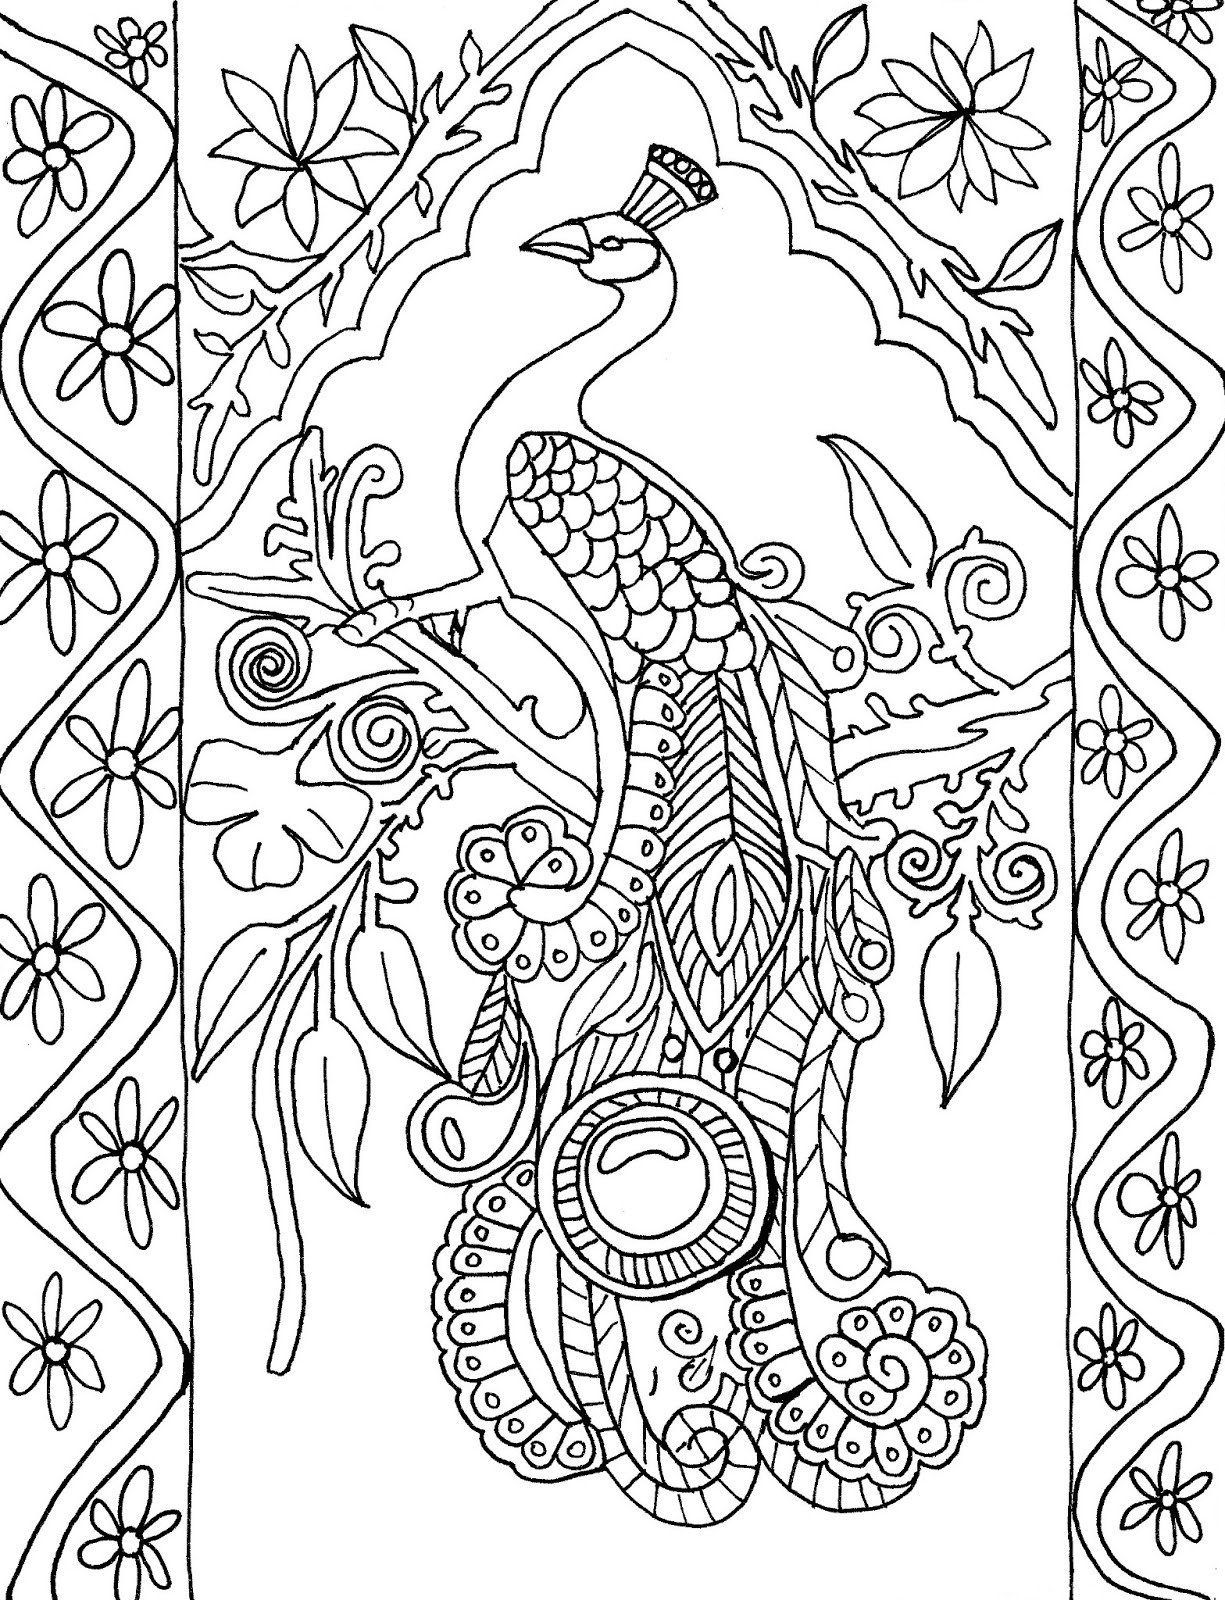 Printable Peacock Coloring Pages Coloring Me Coloring Pages Peacock